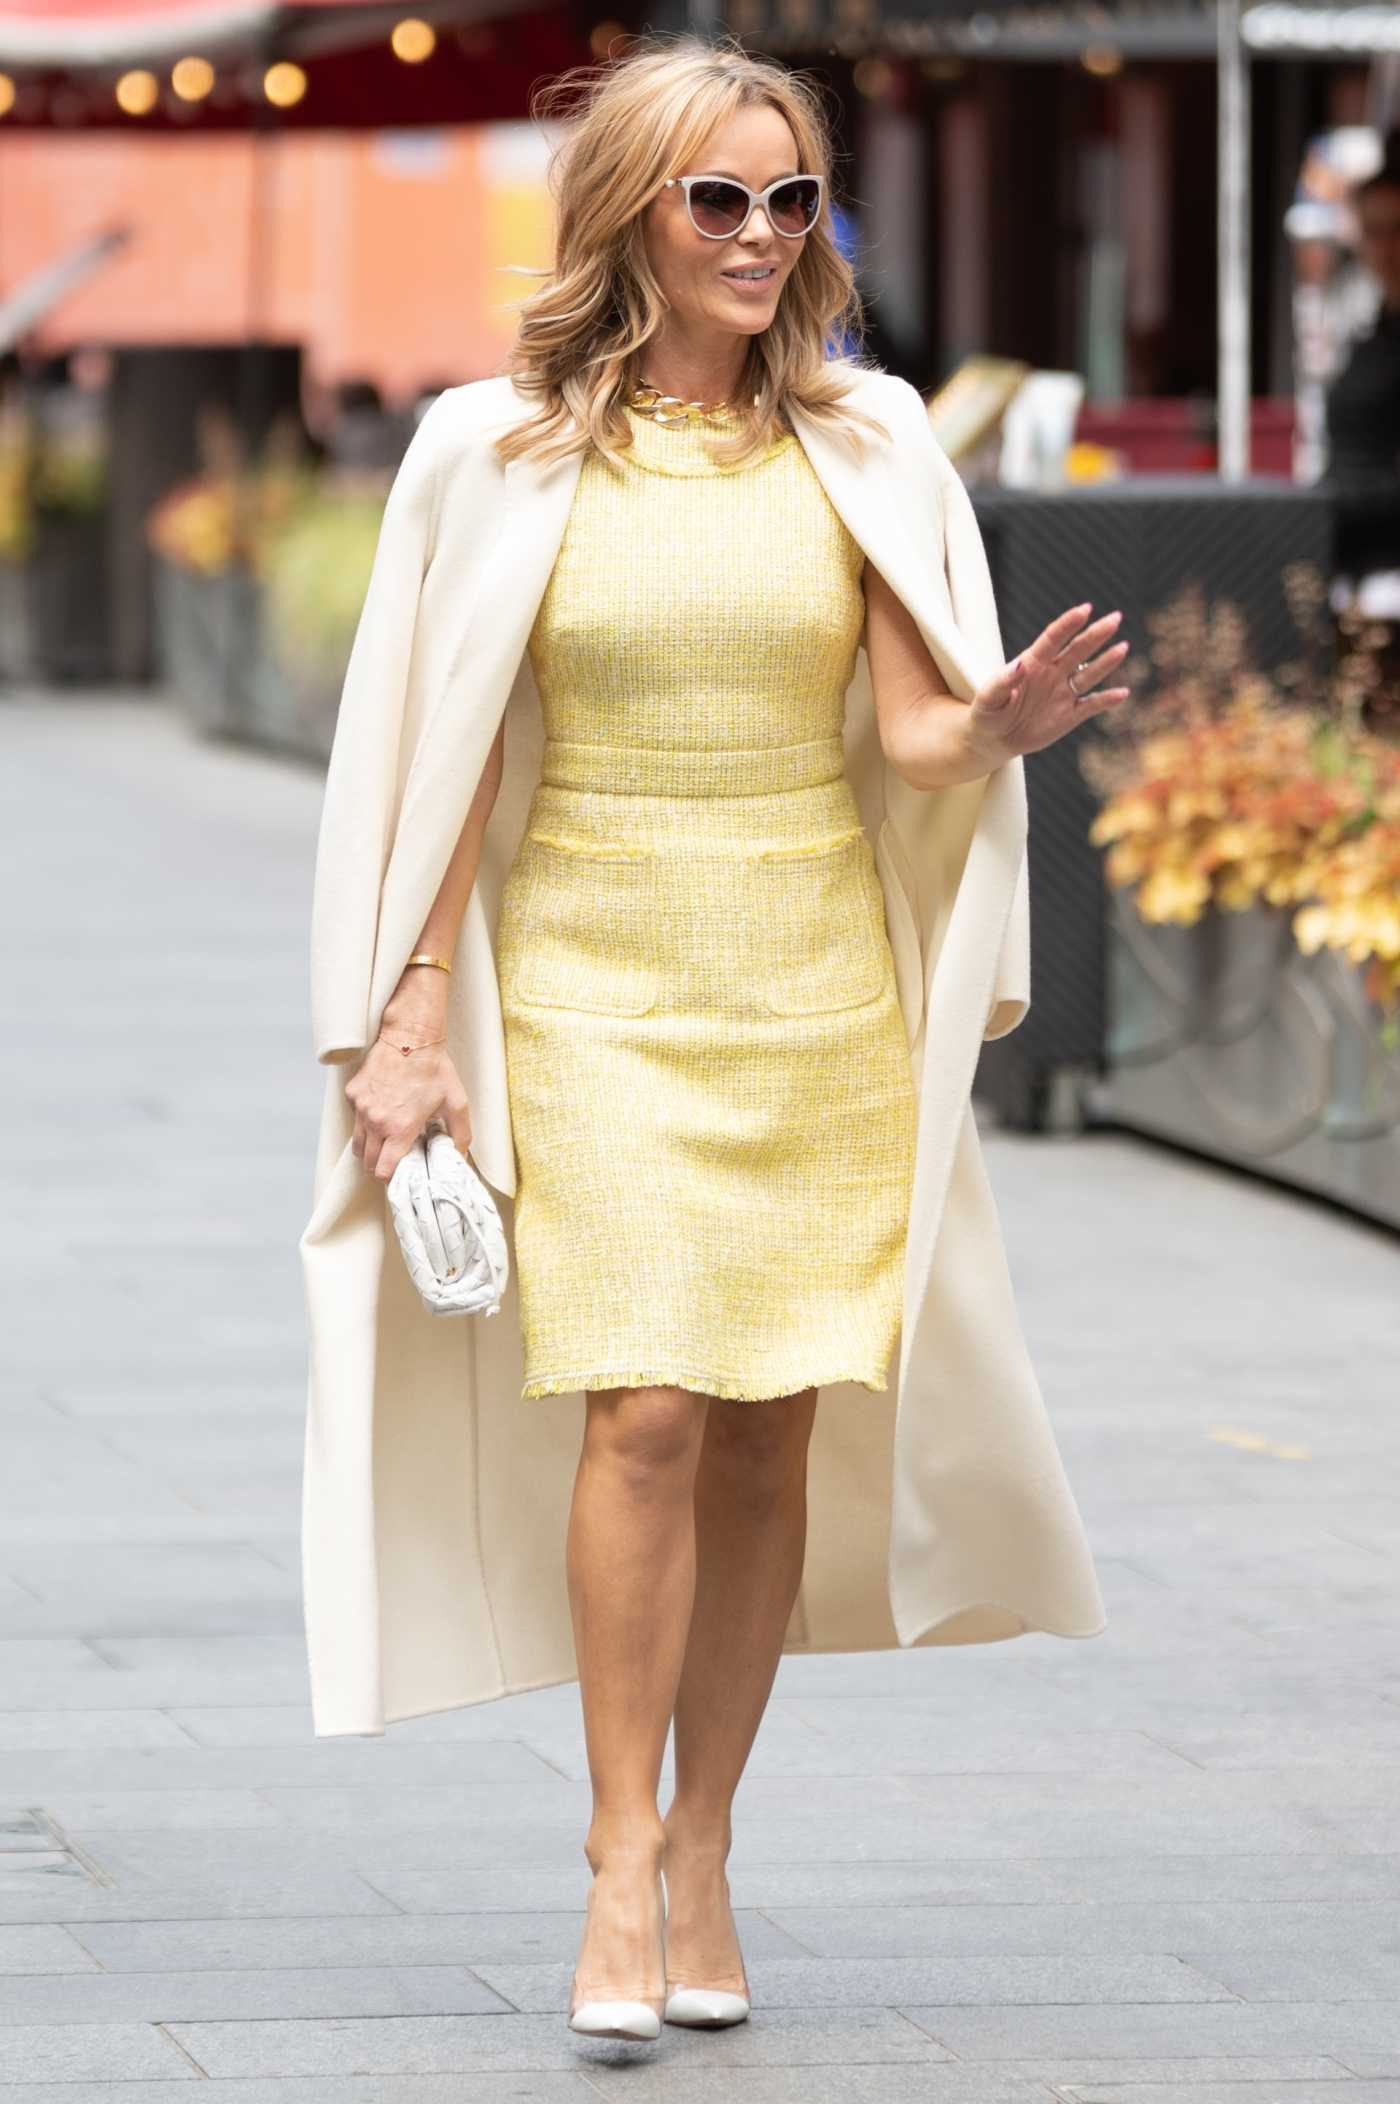 Amanda Holden in a Classy Yellow Dress Leaves the Heart Radio in London 05/26/2021